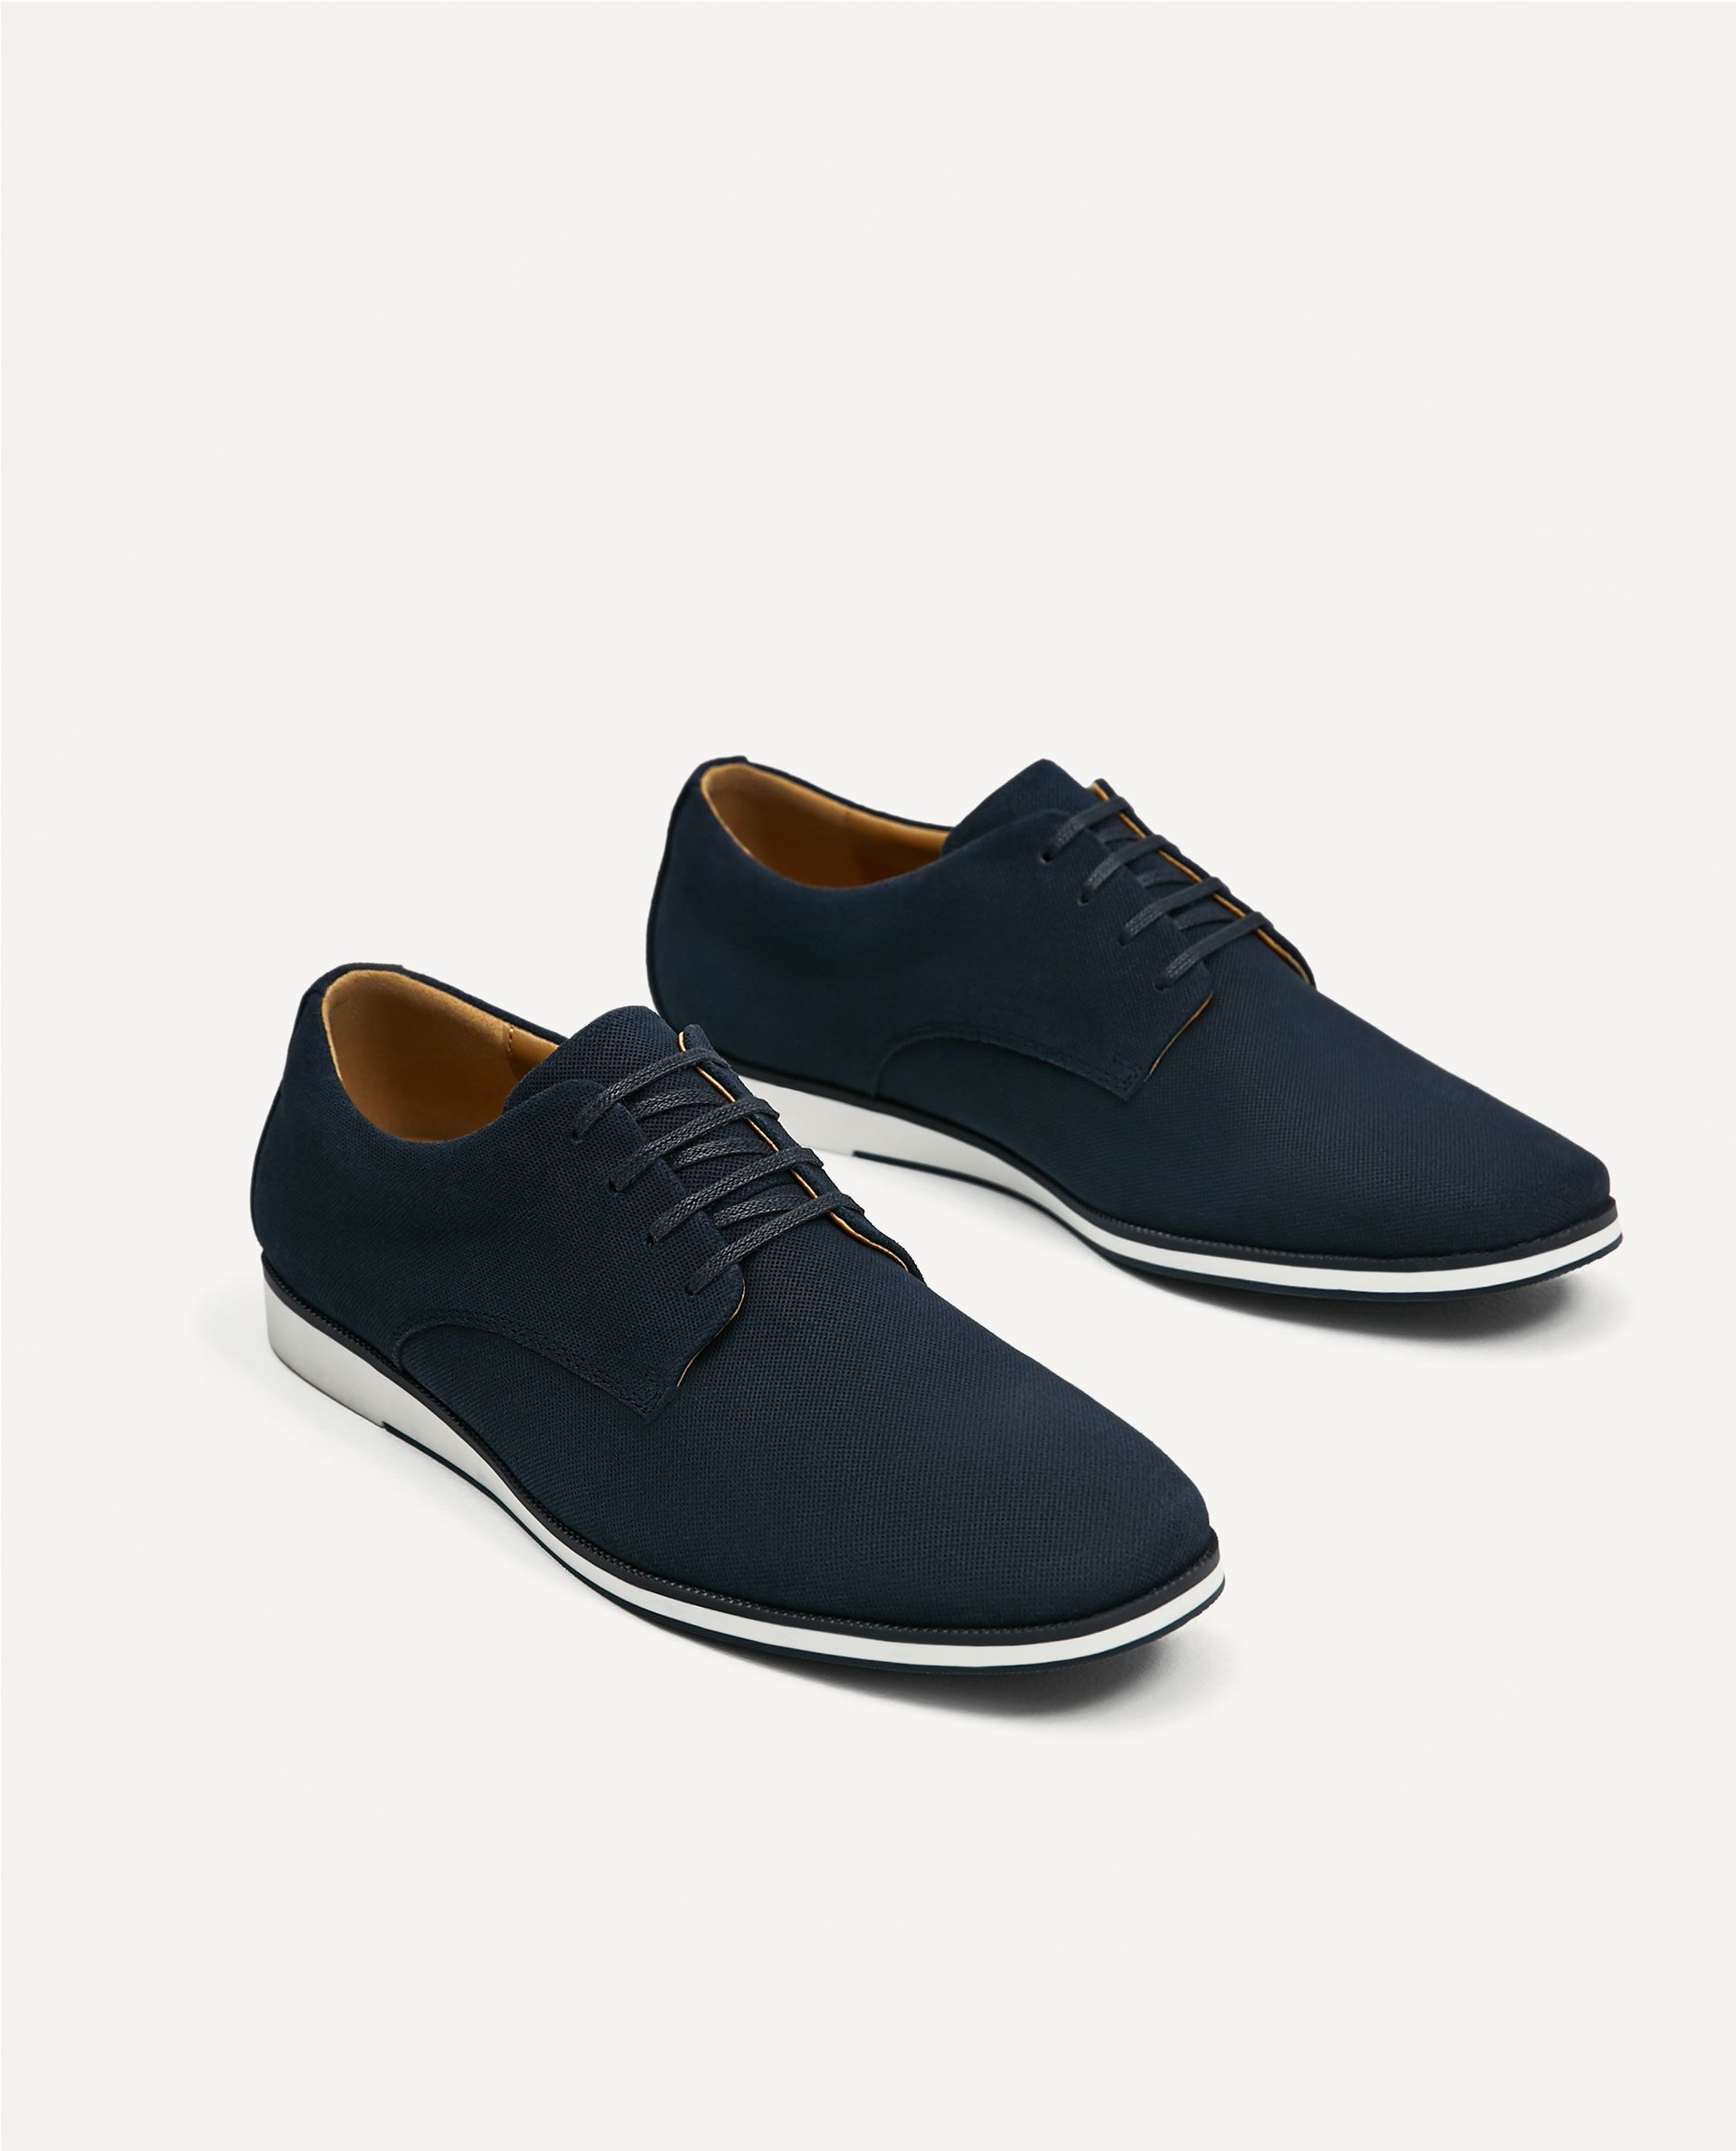 6e6becde ZARA - MAN - EMBOSSED LEATHER SHOE Zapatos Negros Hombre, Zapatos Elegantes  Hombre, Zapatos